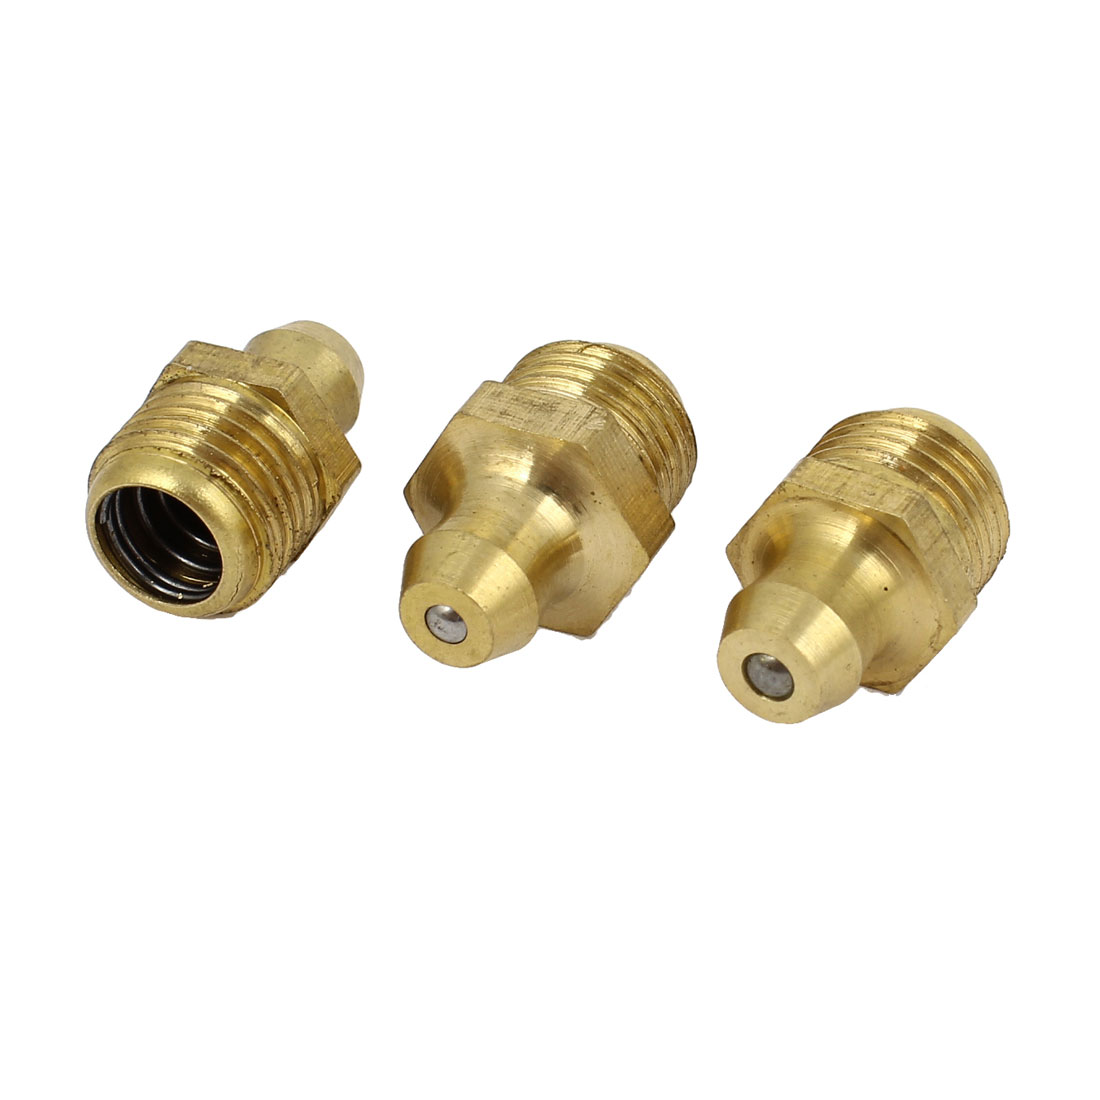 3 Pcs 10mm Dia Male Thread Straight Grease Nipples Fittings Brass Tone for Car